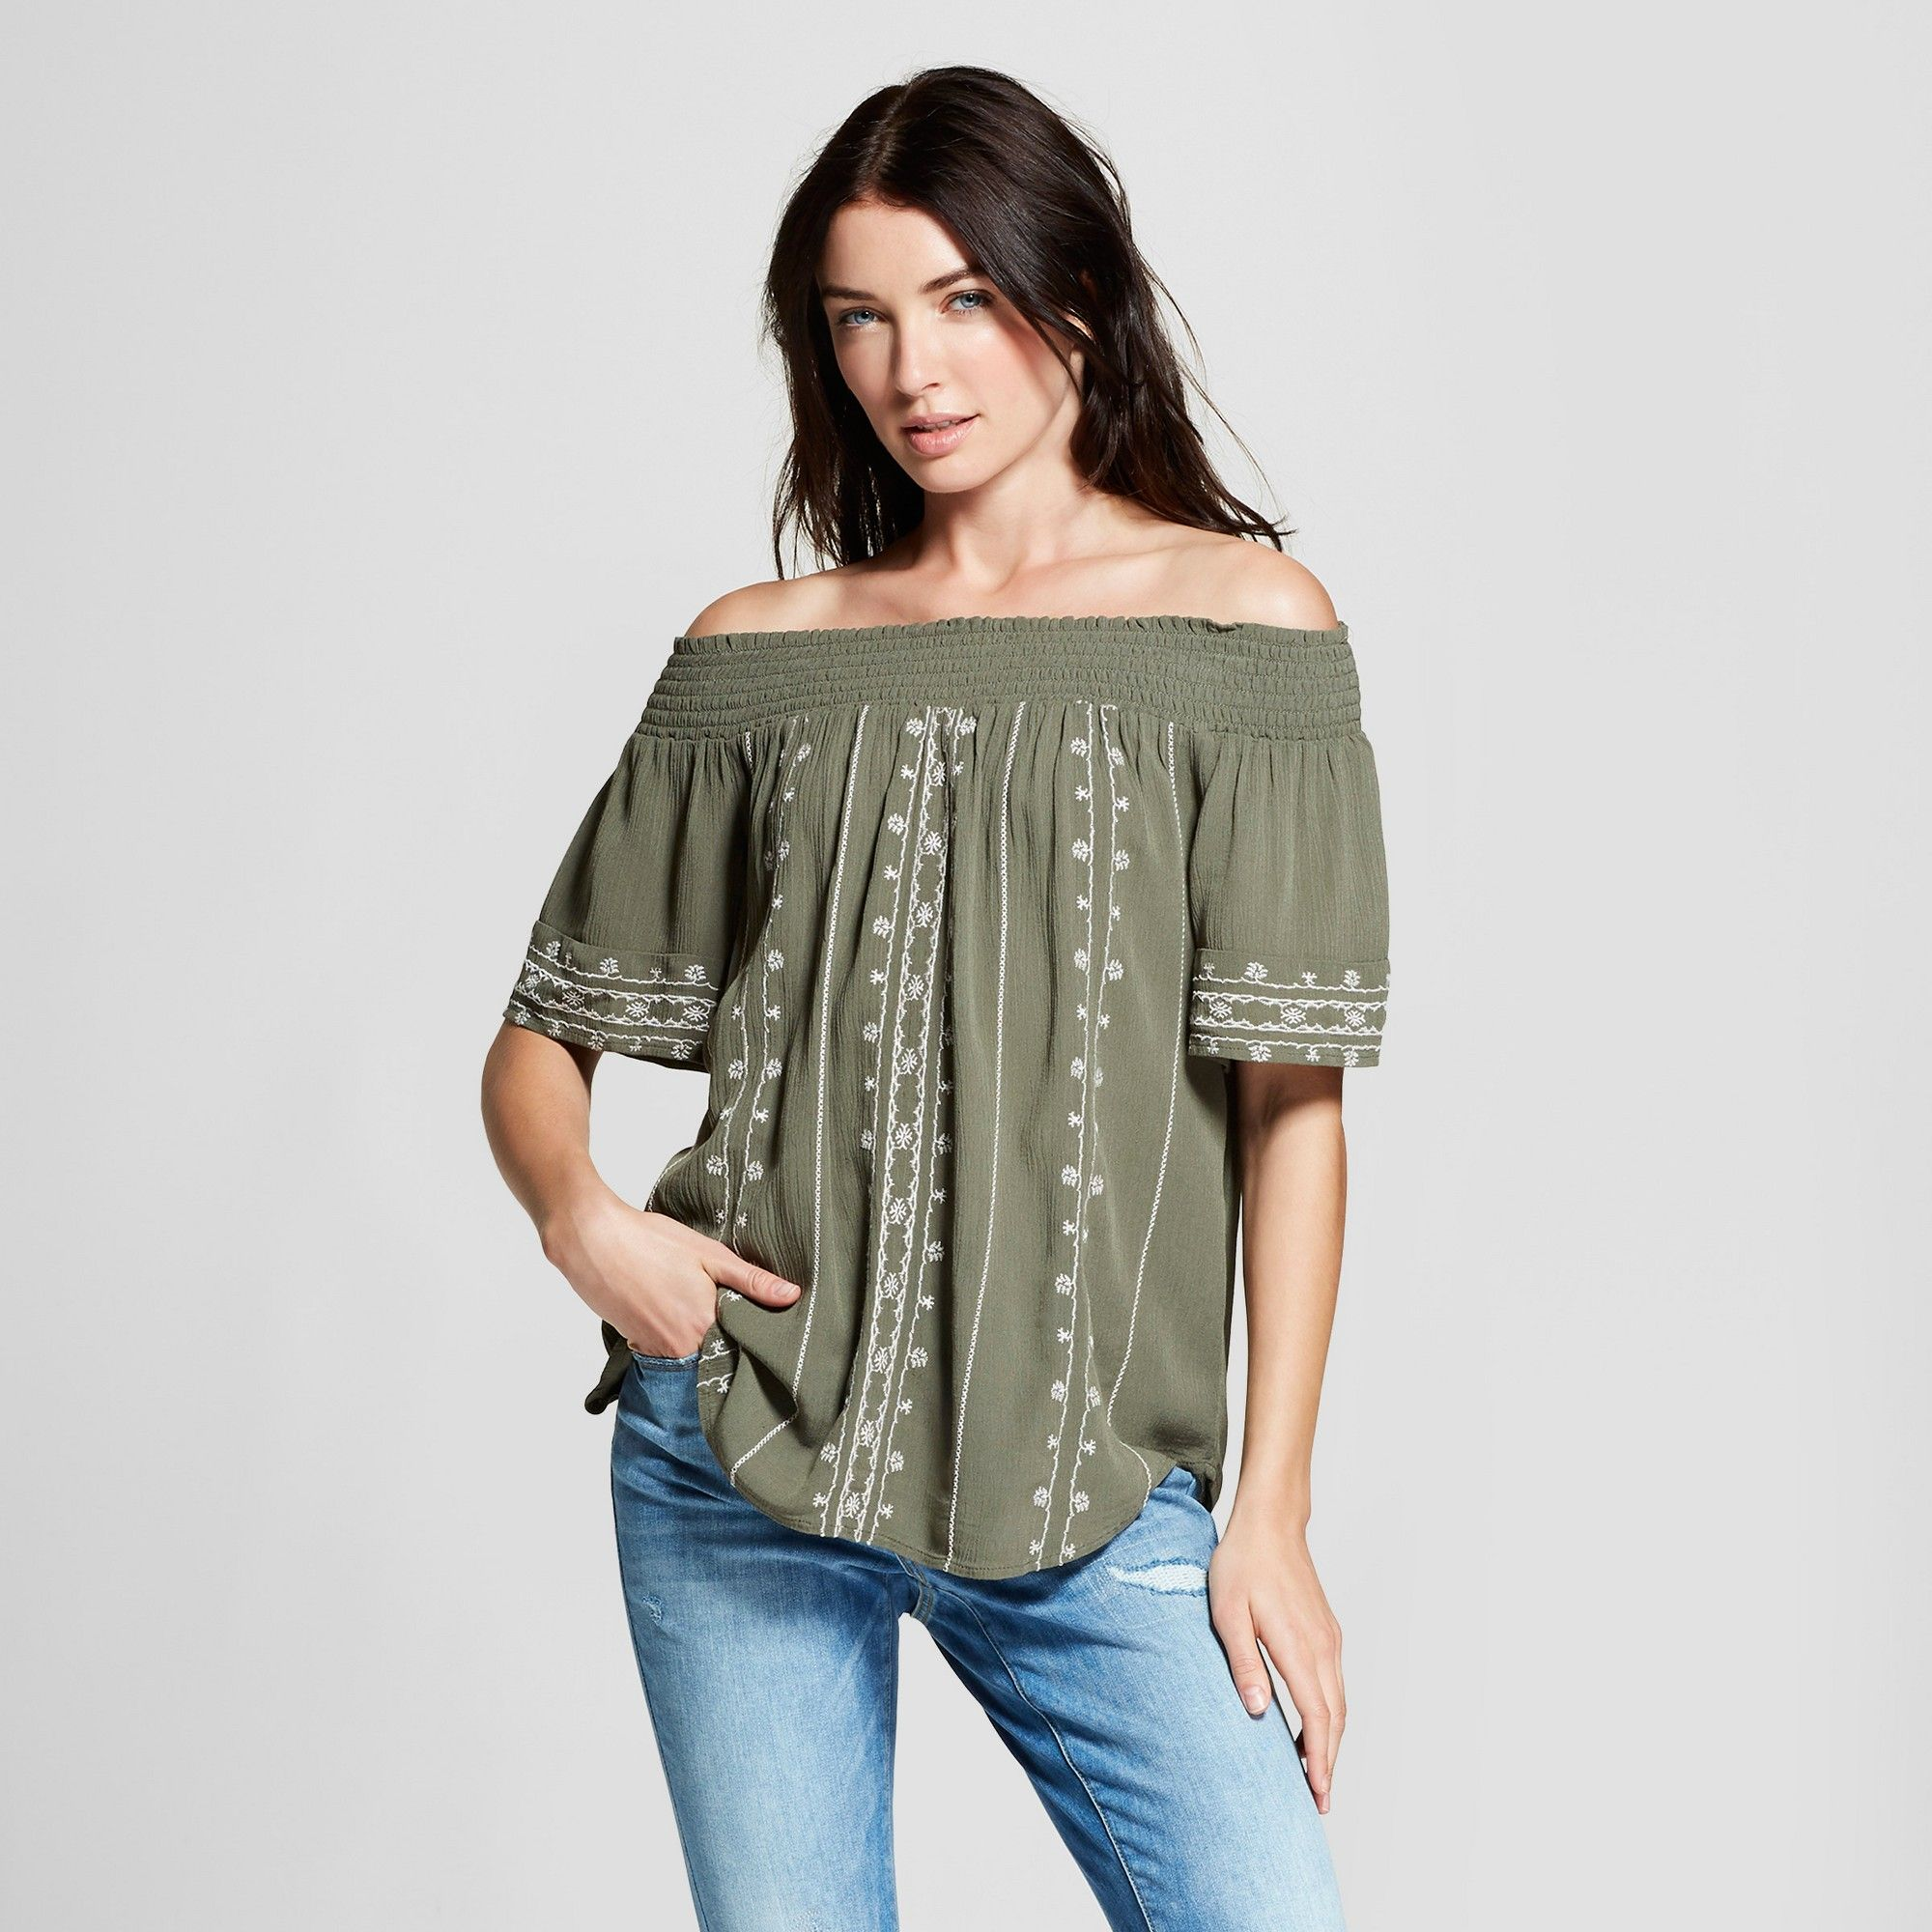 2bb9e4069fedde Women s Short Sleeve Embroidered Off the Shoulder Top - Knox Rose Olive  Xxl